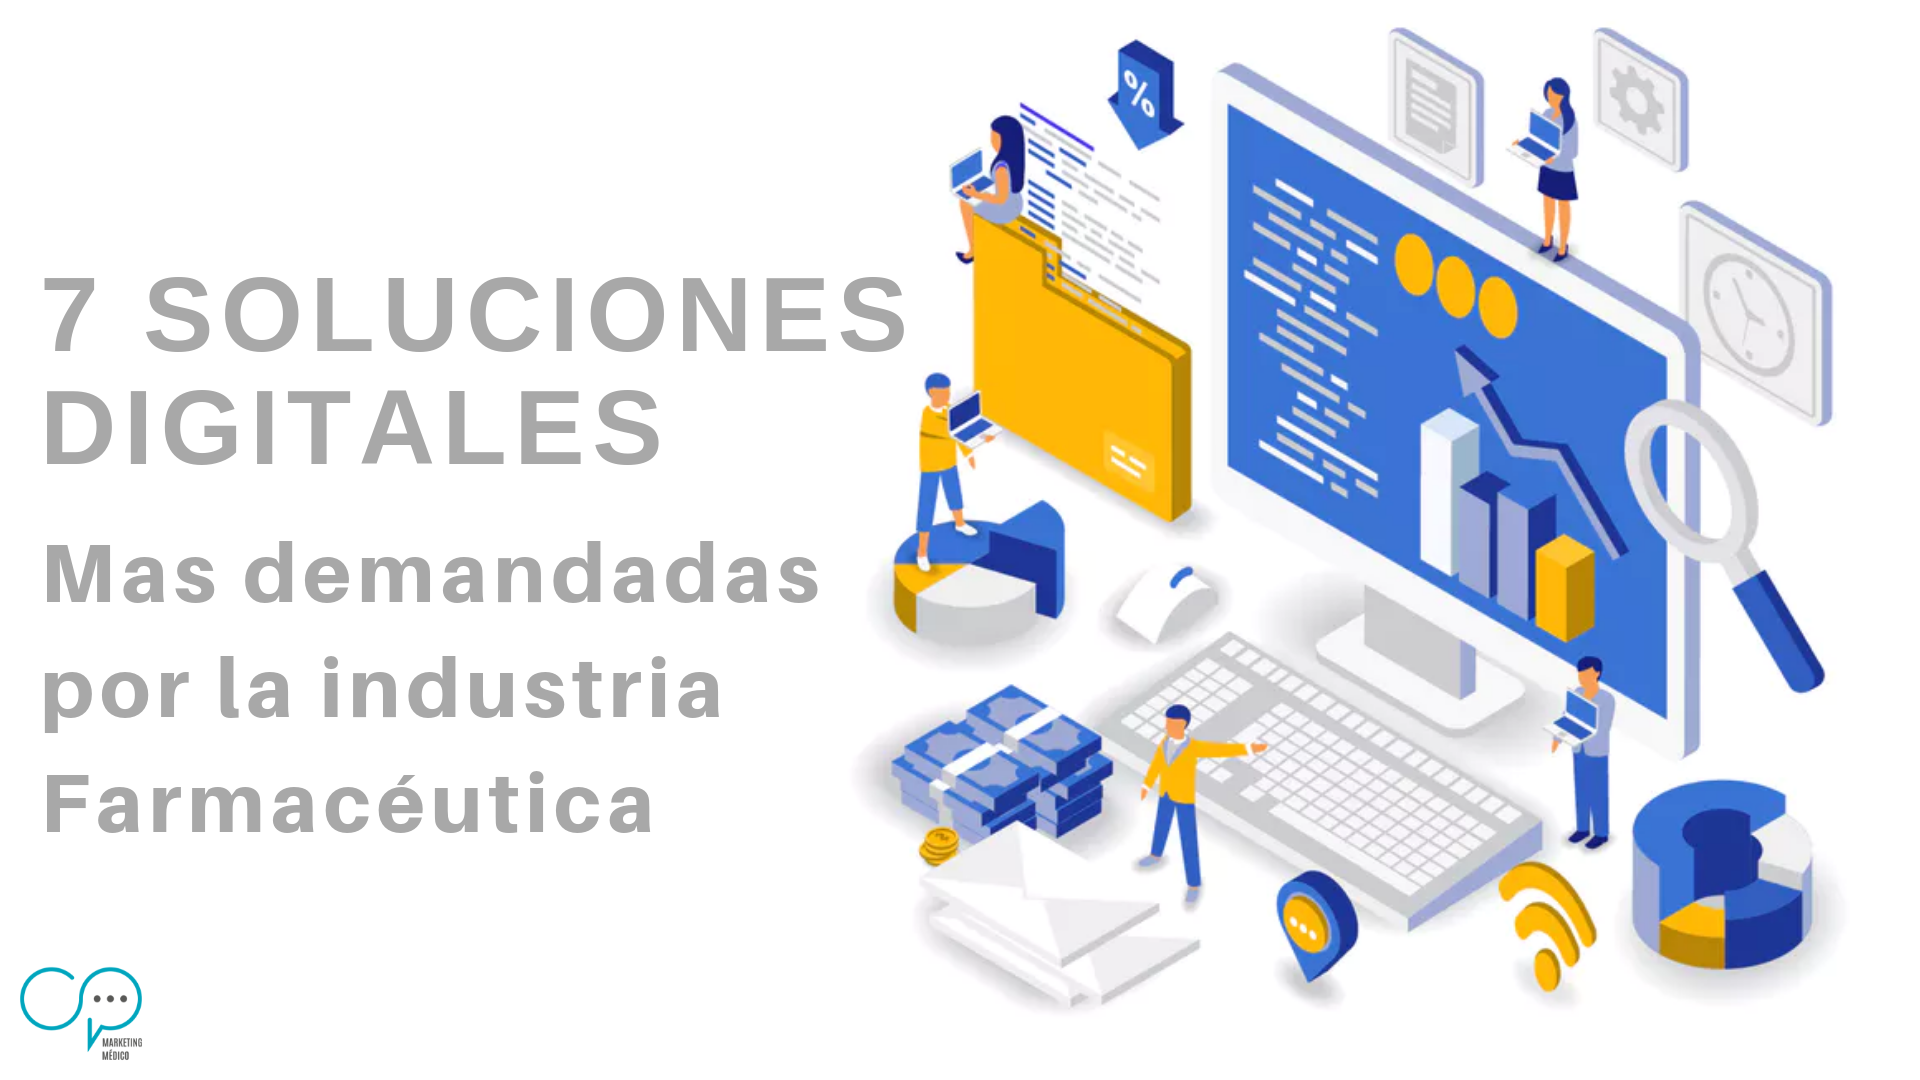 7 soluciones digitales cpmm cp marketing medico